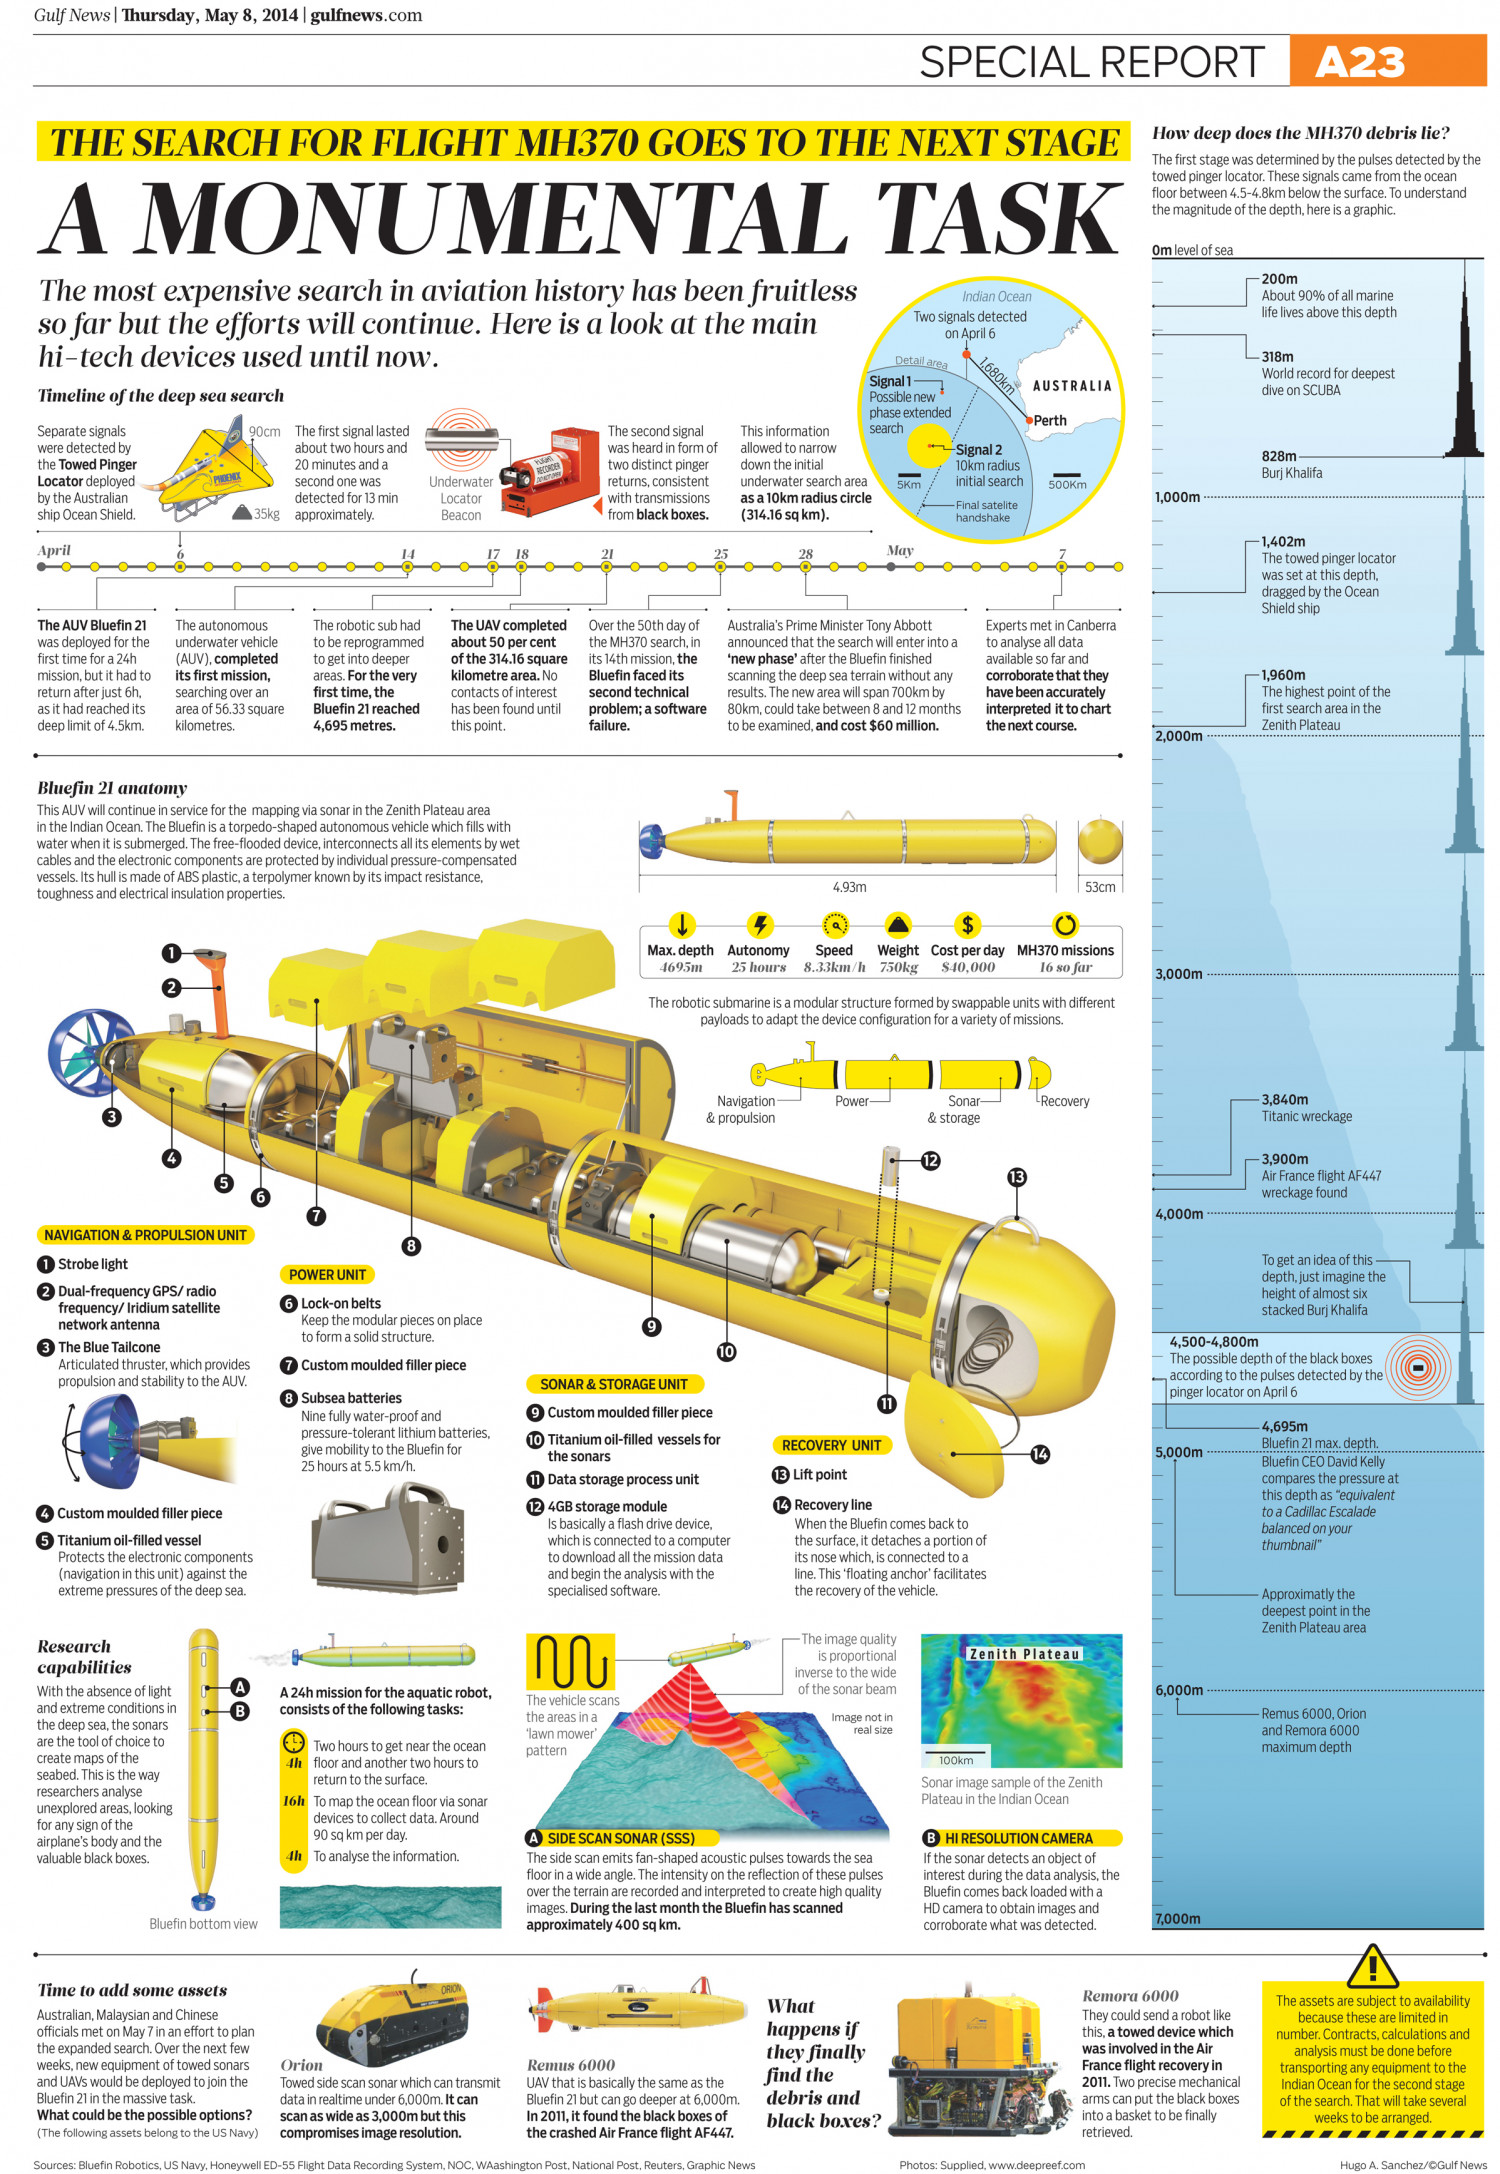 The Search for the Flight MH370 Goes to the Next Stage: A Monumental Task Infographic